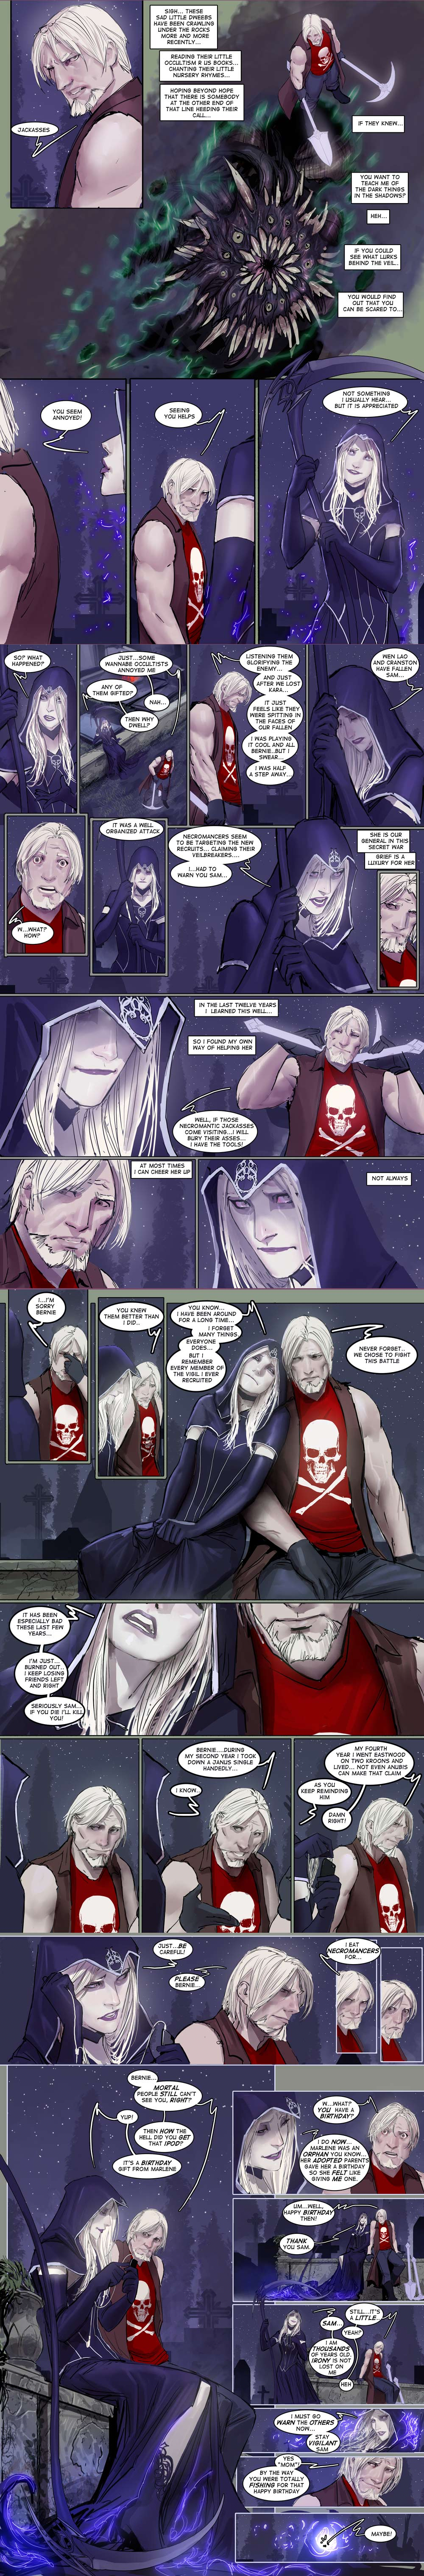 death vigil pages 7 to 10 by nebezial